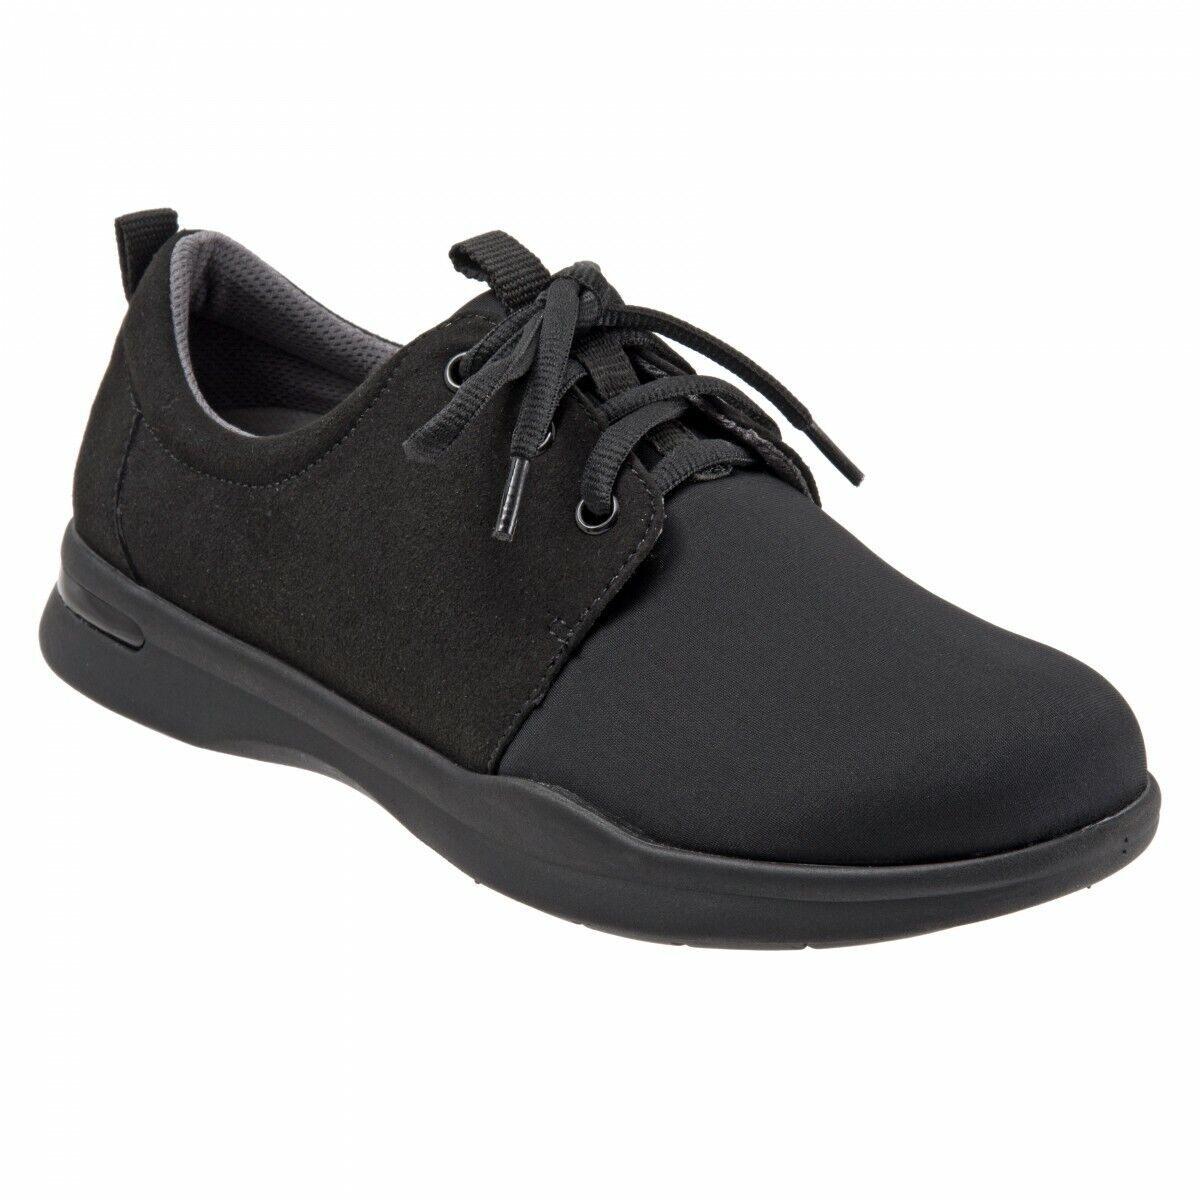 Softwalk Relax Women's Comfort Oxford - All Colors - All Sizes